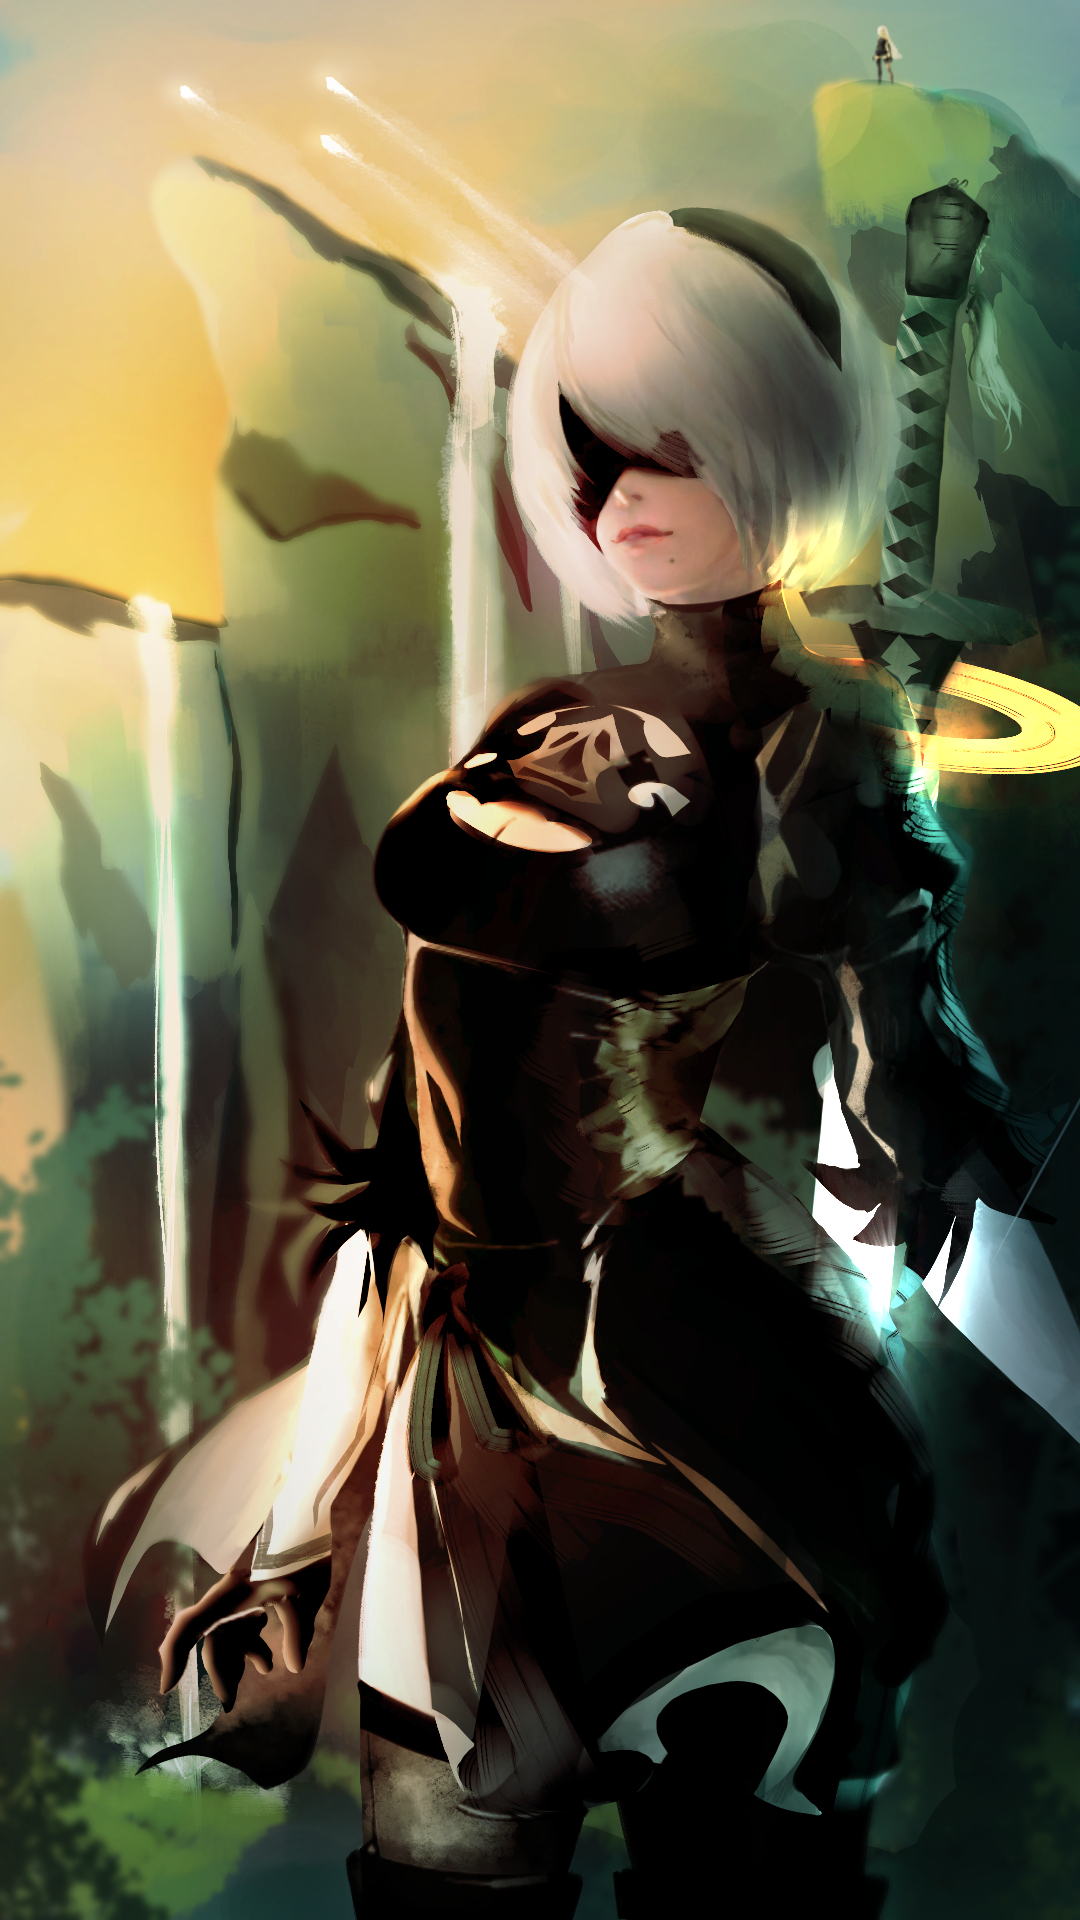 Nier Automata Phone Wallpaper By Panzermanzer On Deviantart